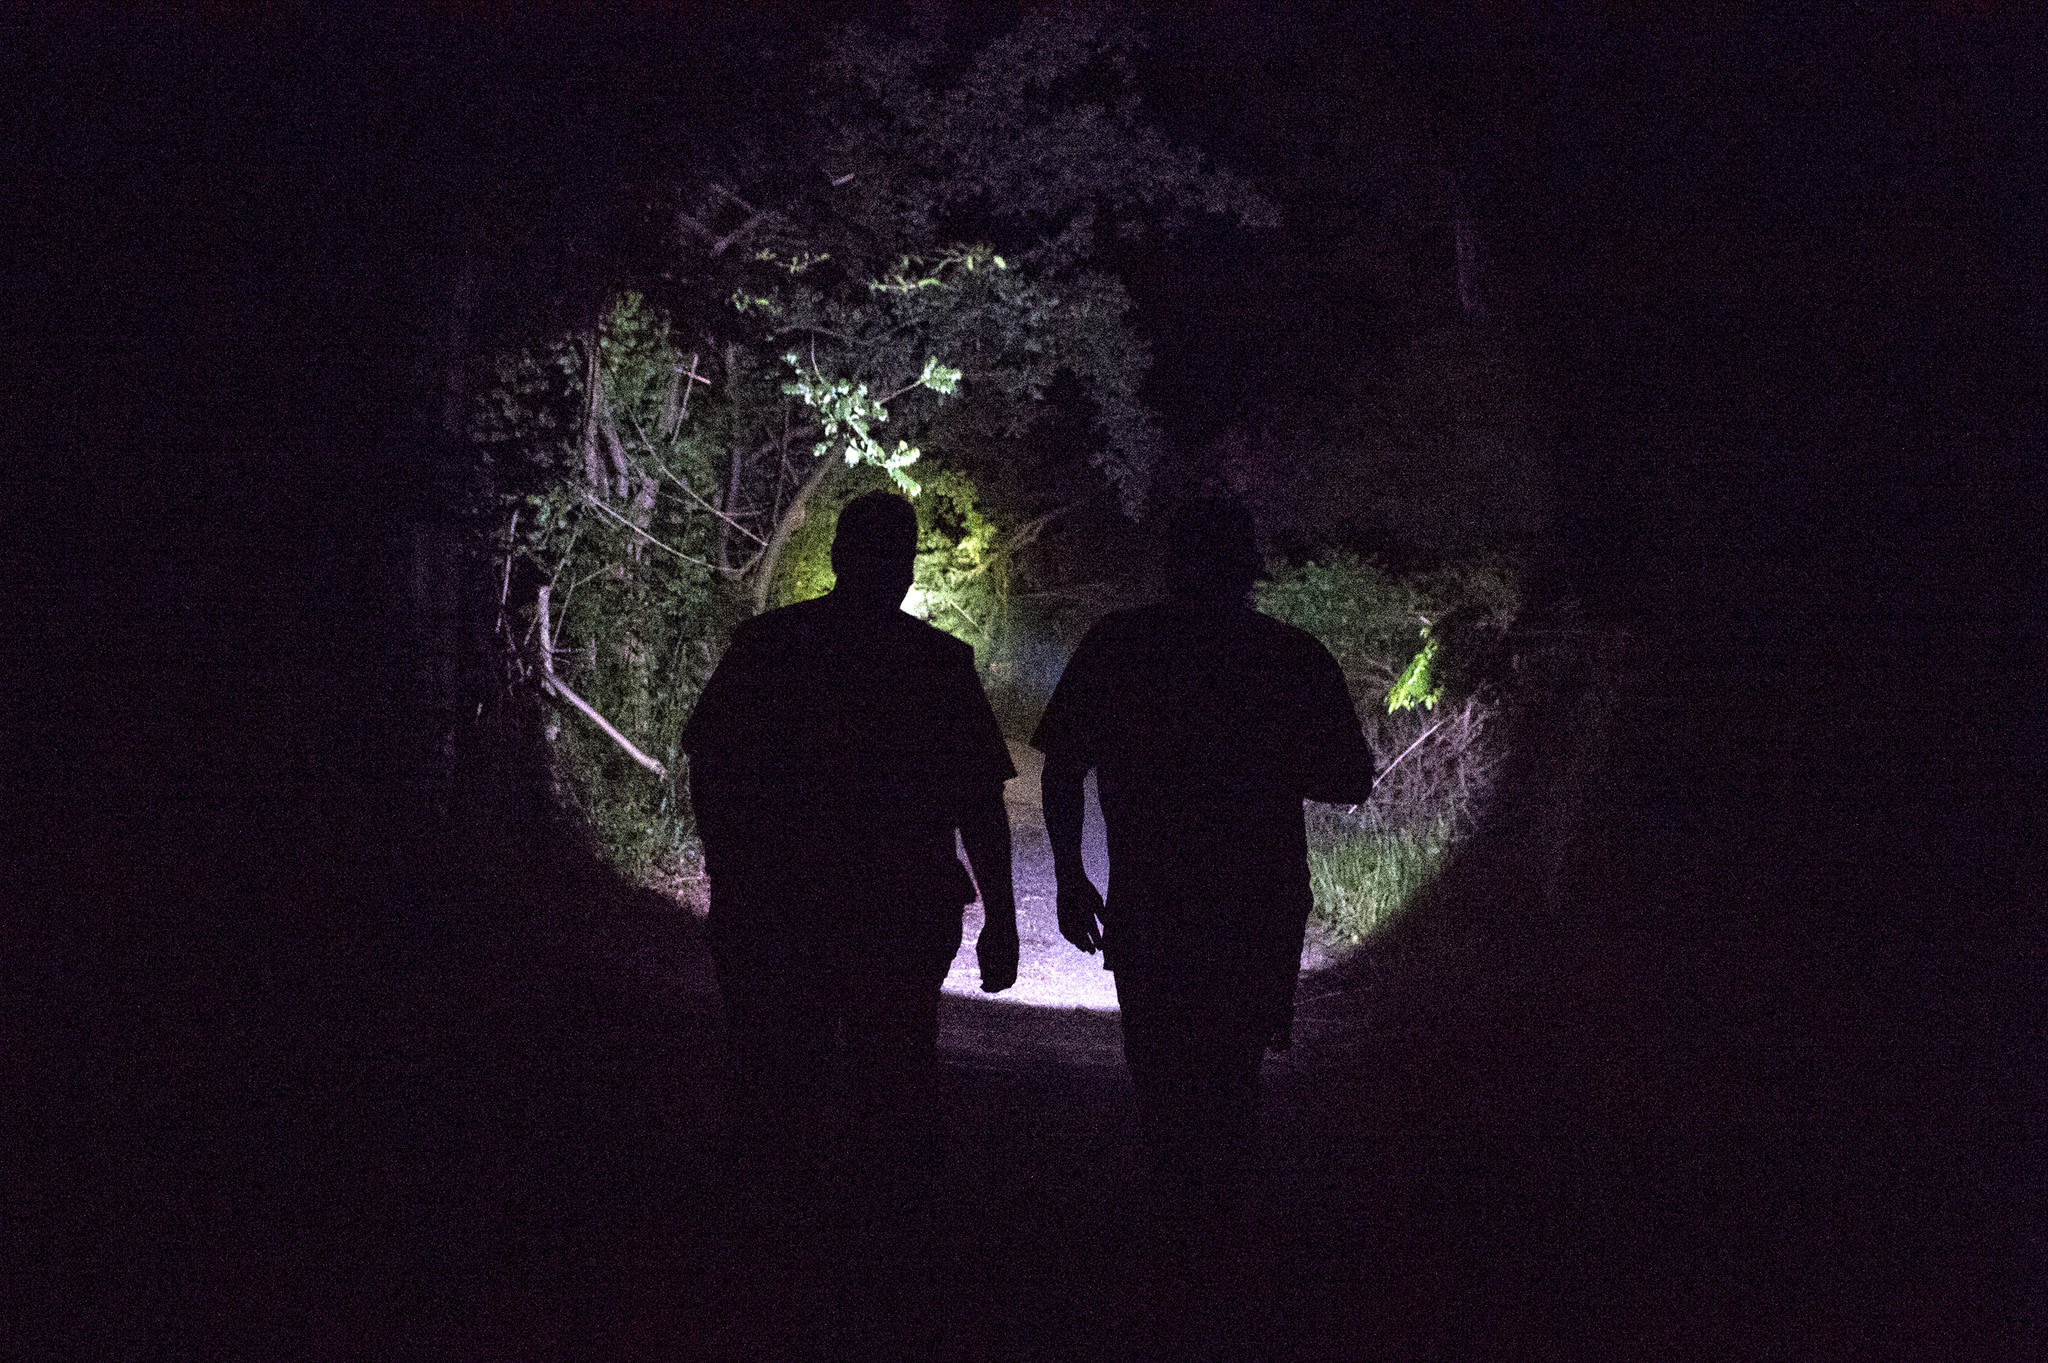 In San German, Puerto Rico, Elliot Matos, at left, and David Velasquez shine a spotlight to illuminate their path on a rural road as they search for an address in the dark, hilly terrain.